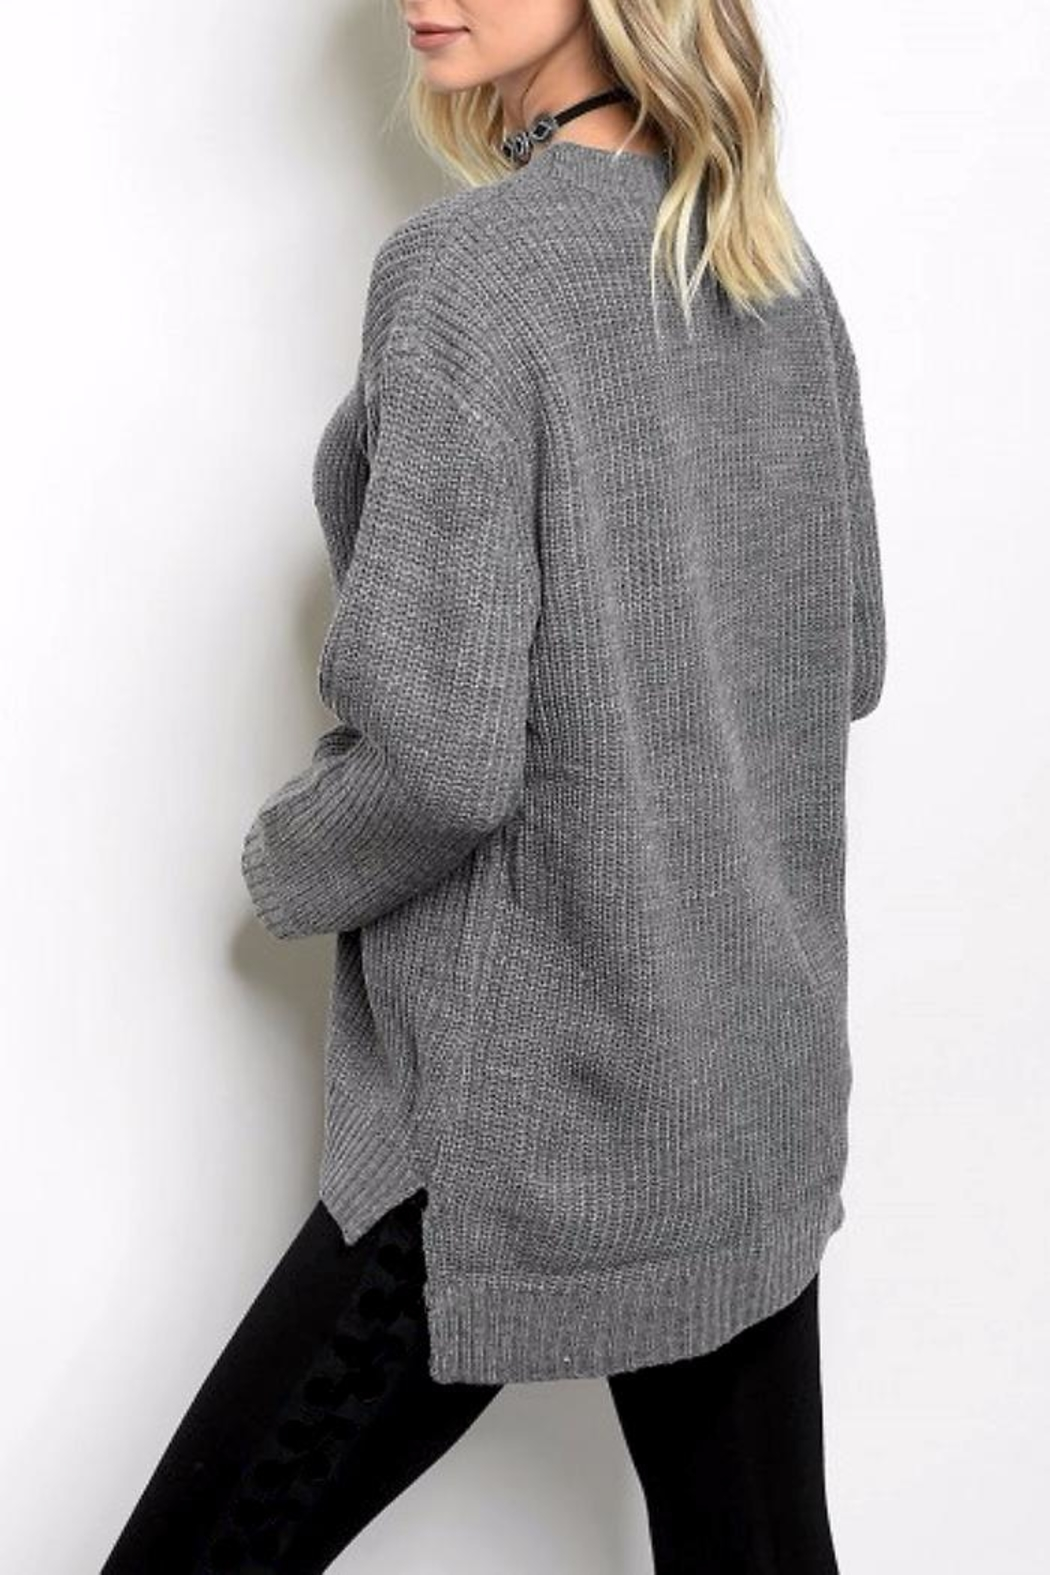 People Outfitter Grey Lace-Up Sweater - Front Full Image